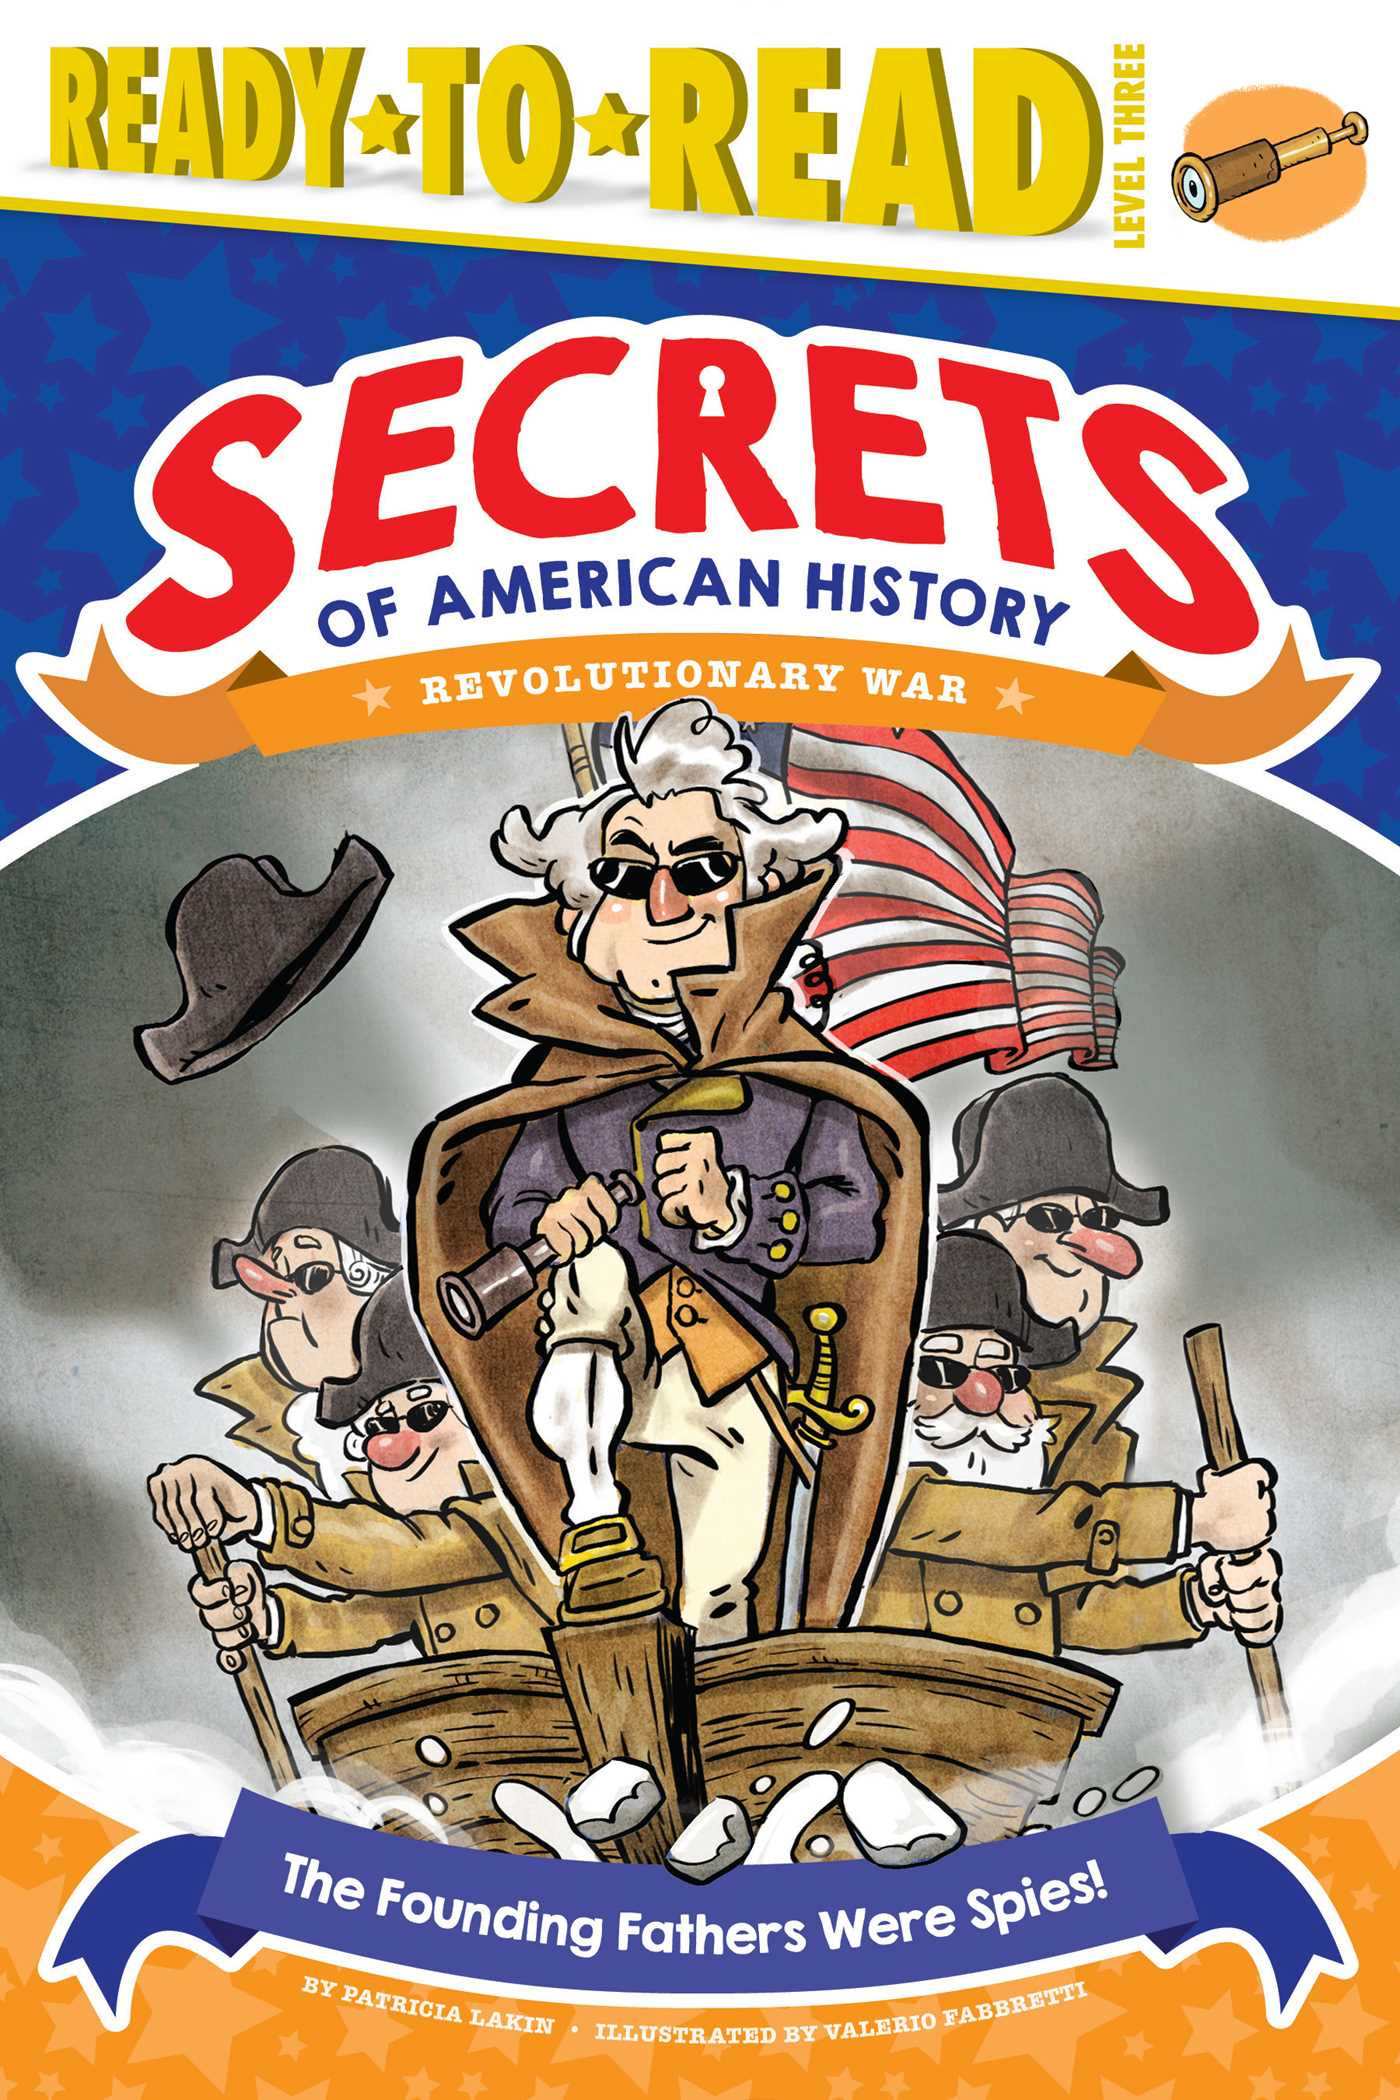 The founding fathers were spies 9781481499699 hr